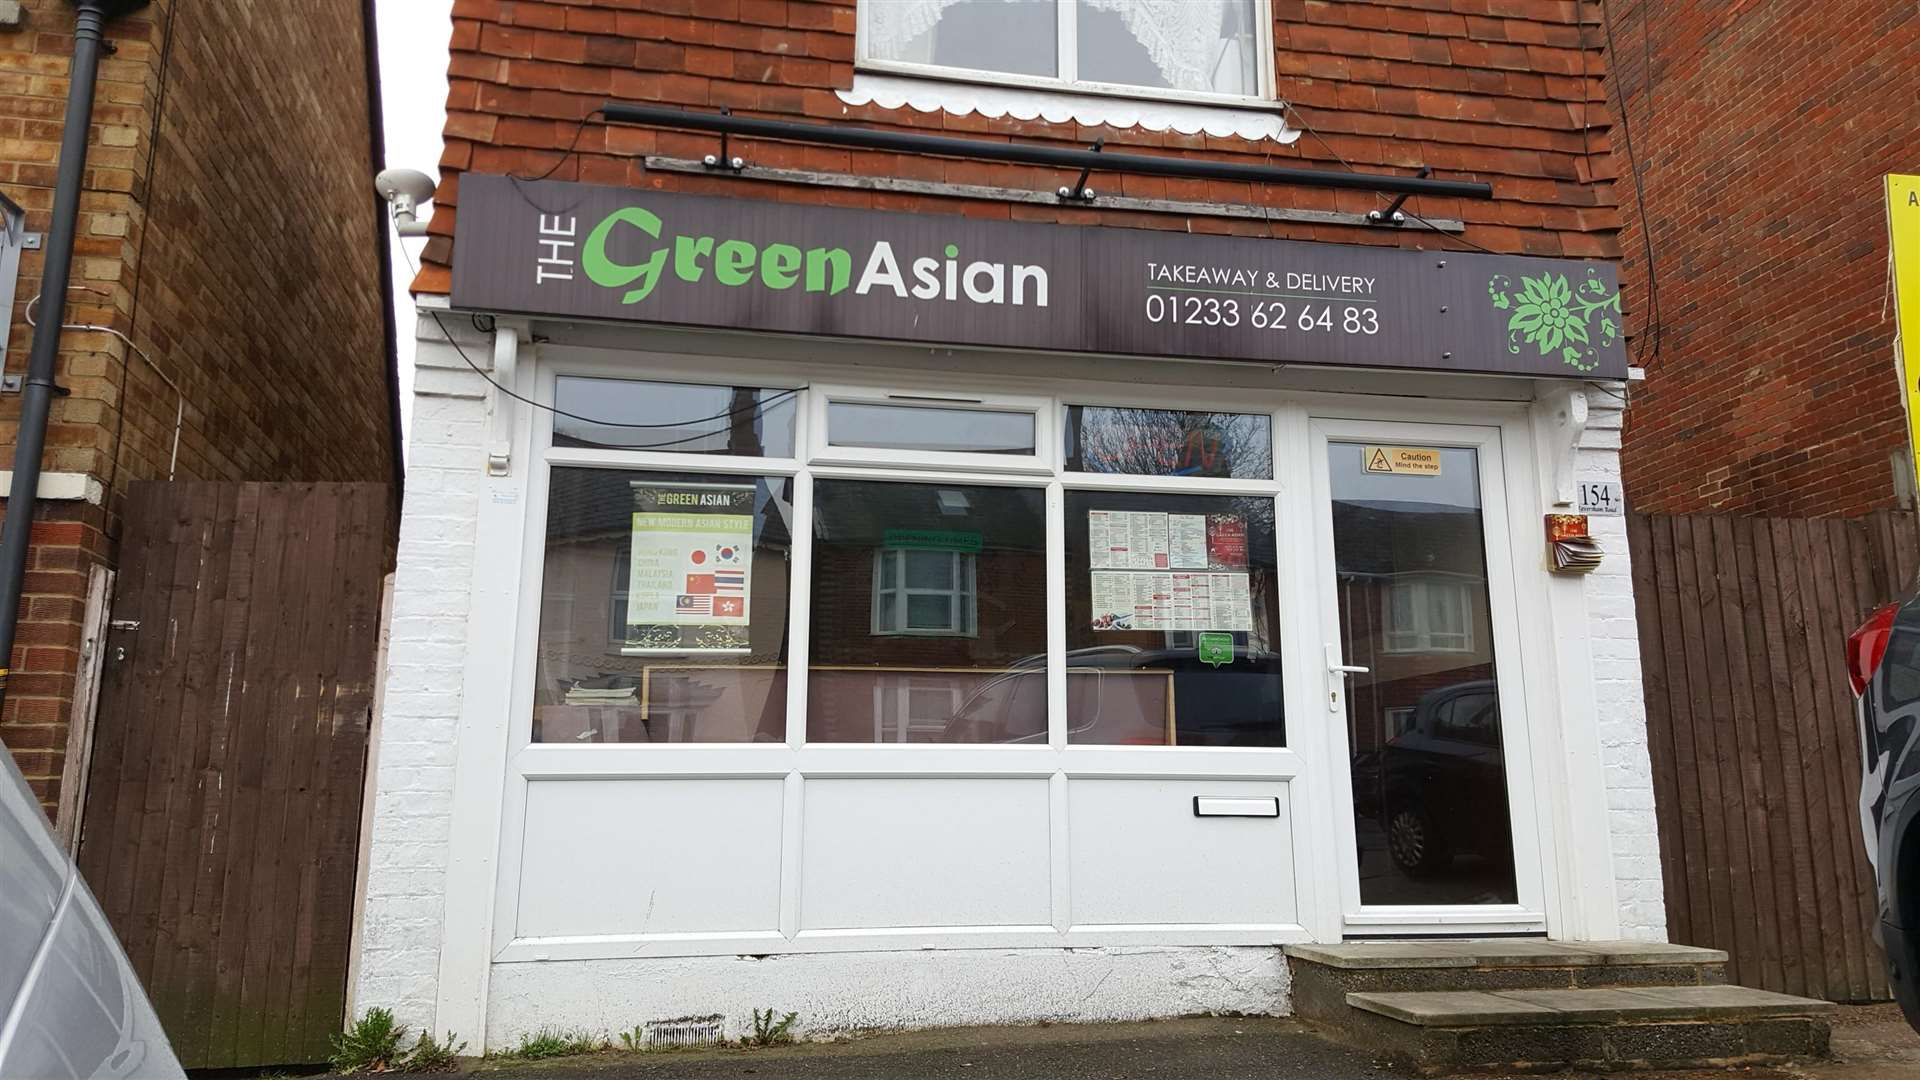 The Green Asian in Faversham Road